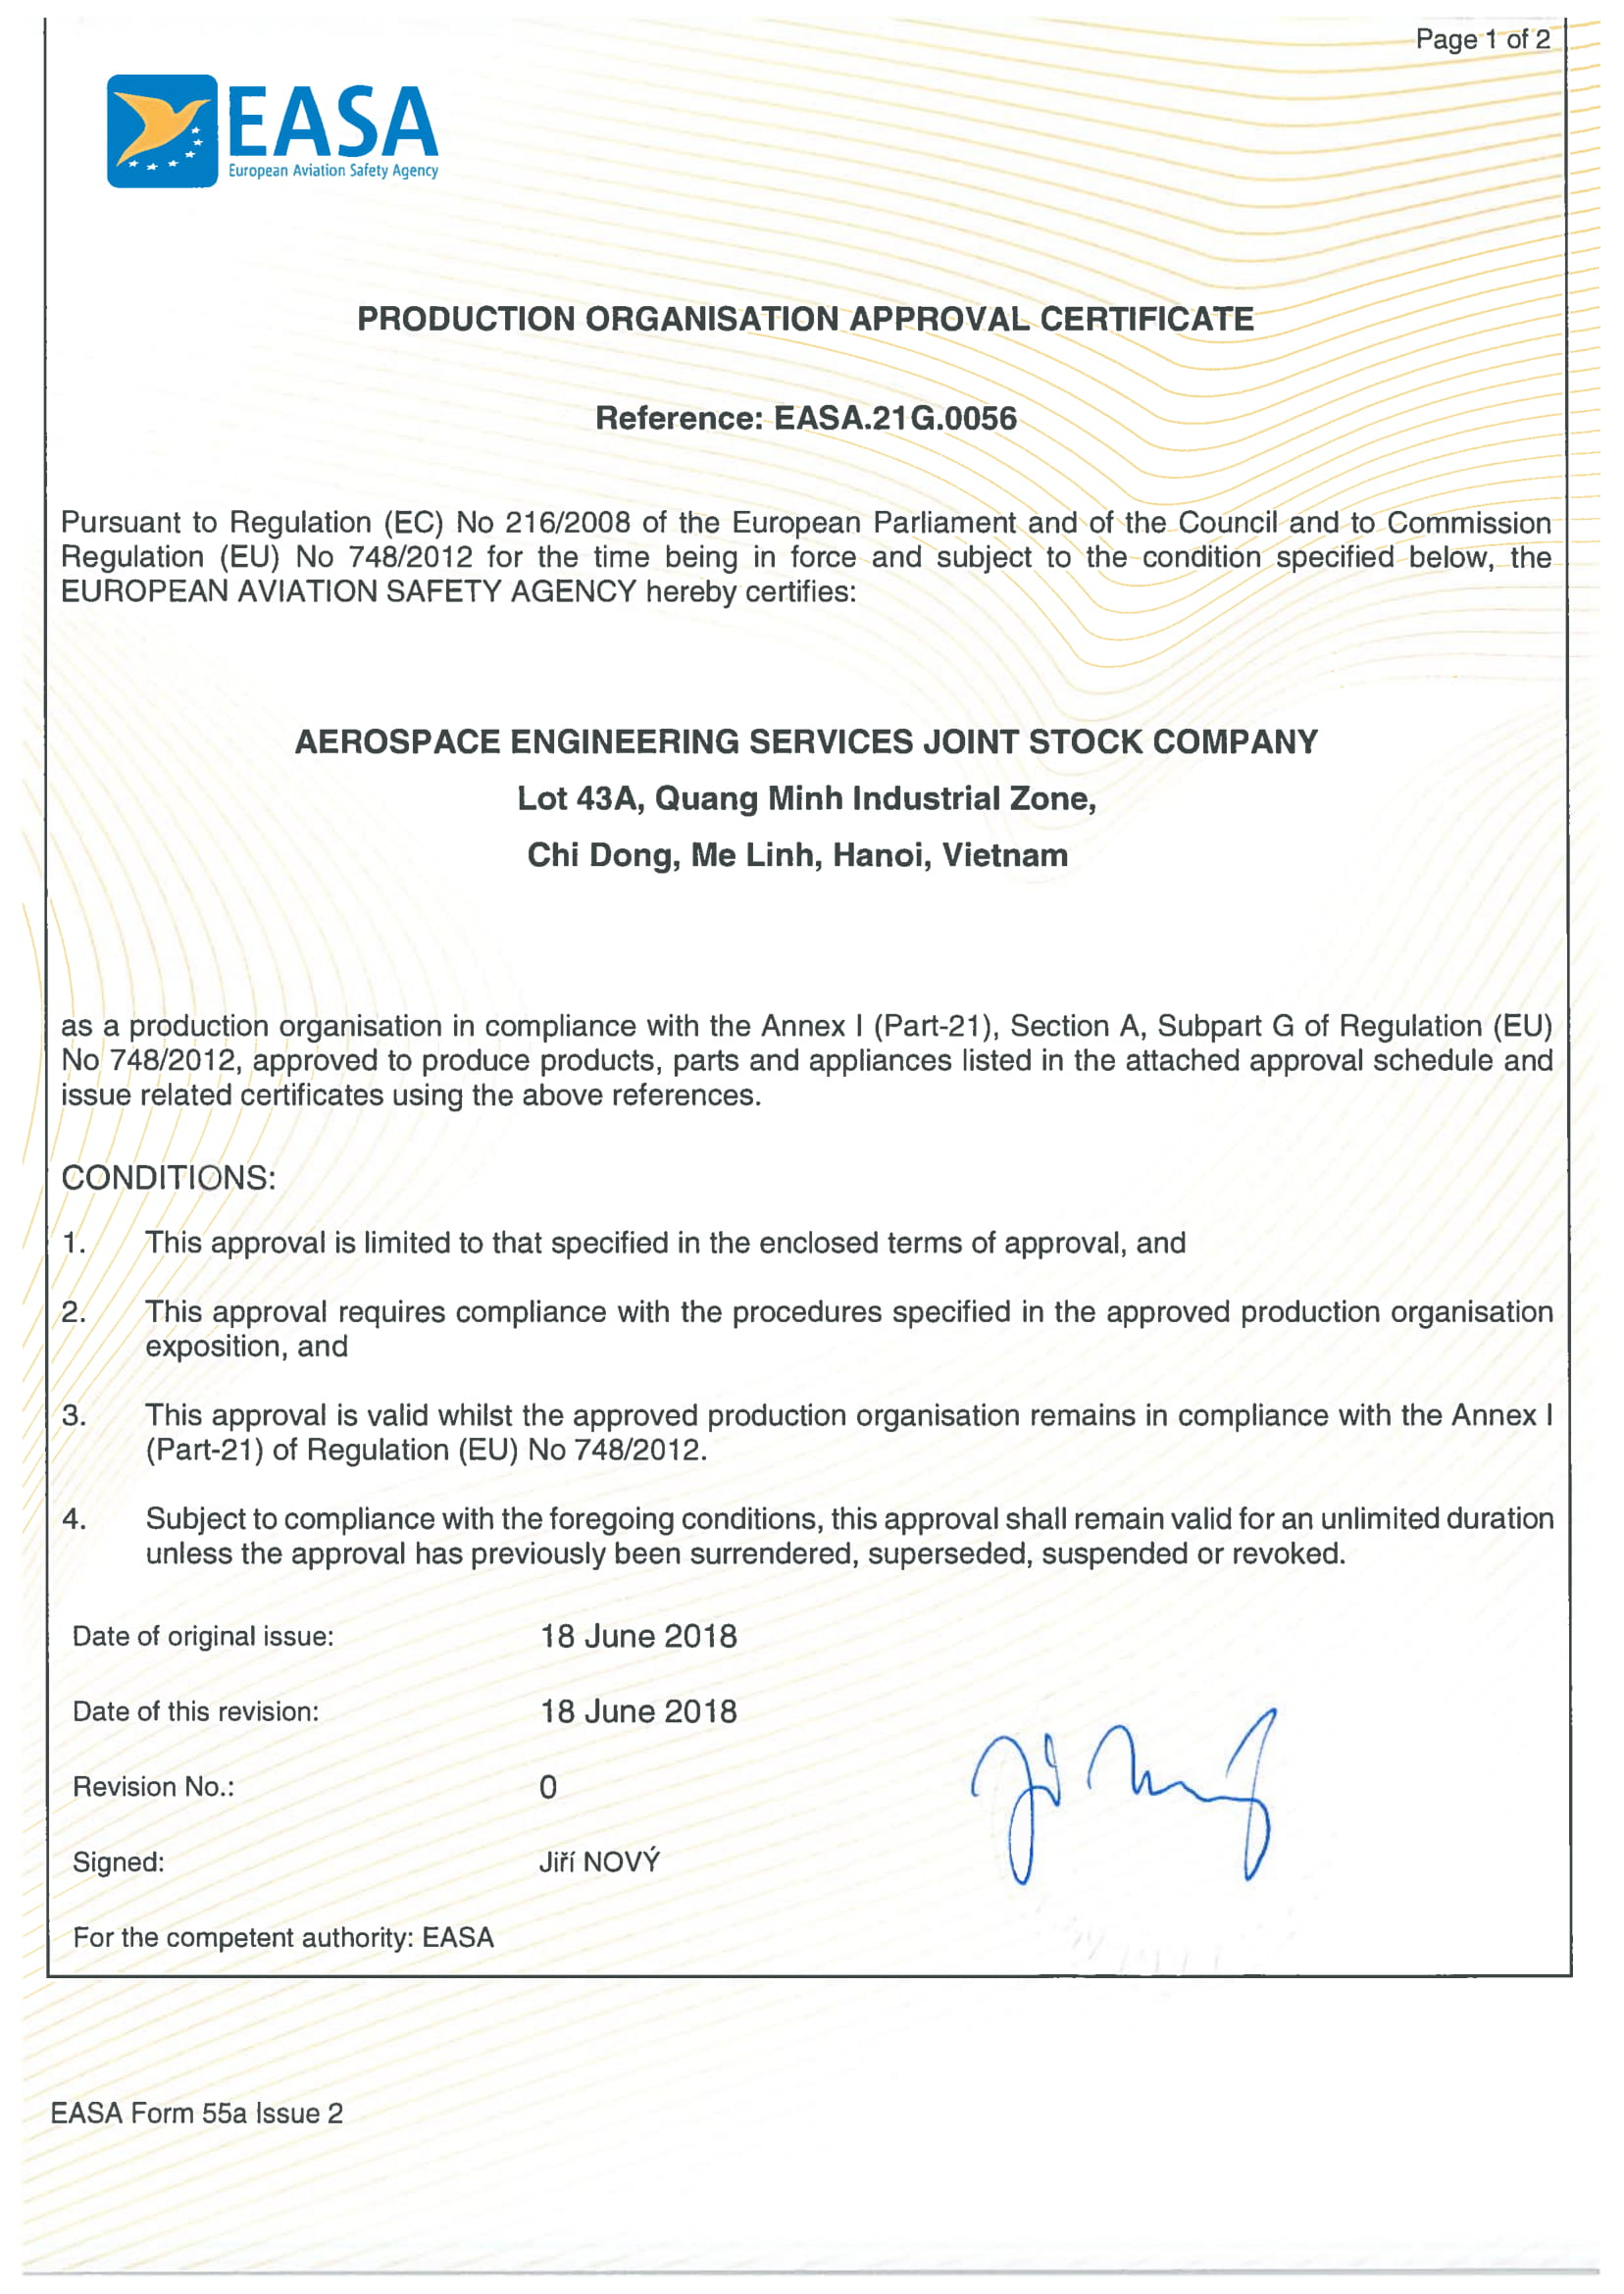 EASA Production Organisation Approval Certificate